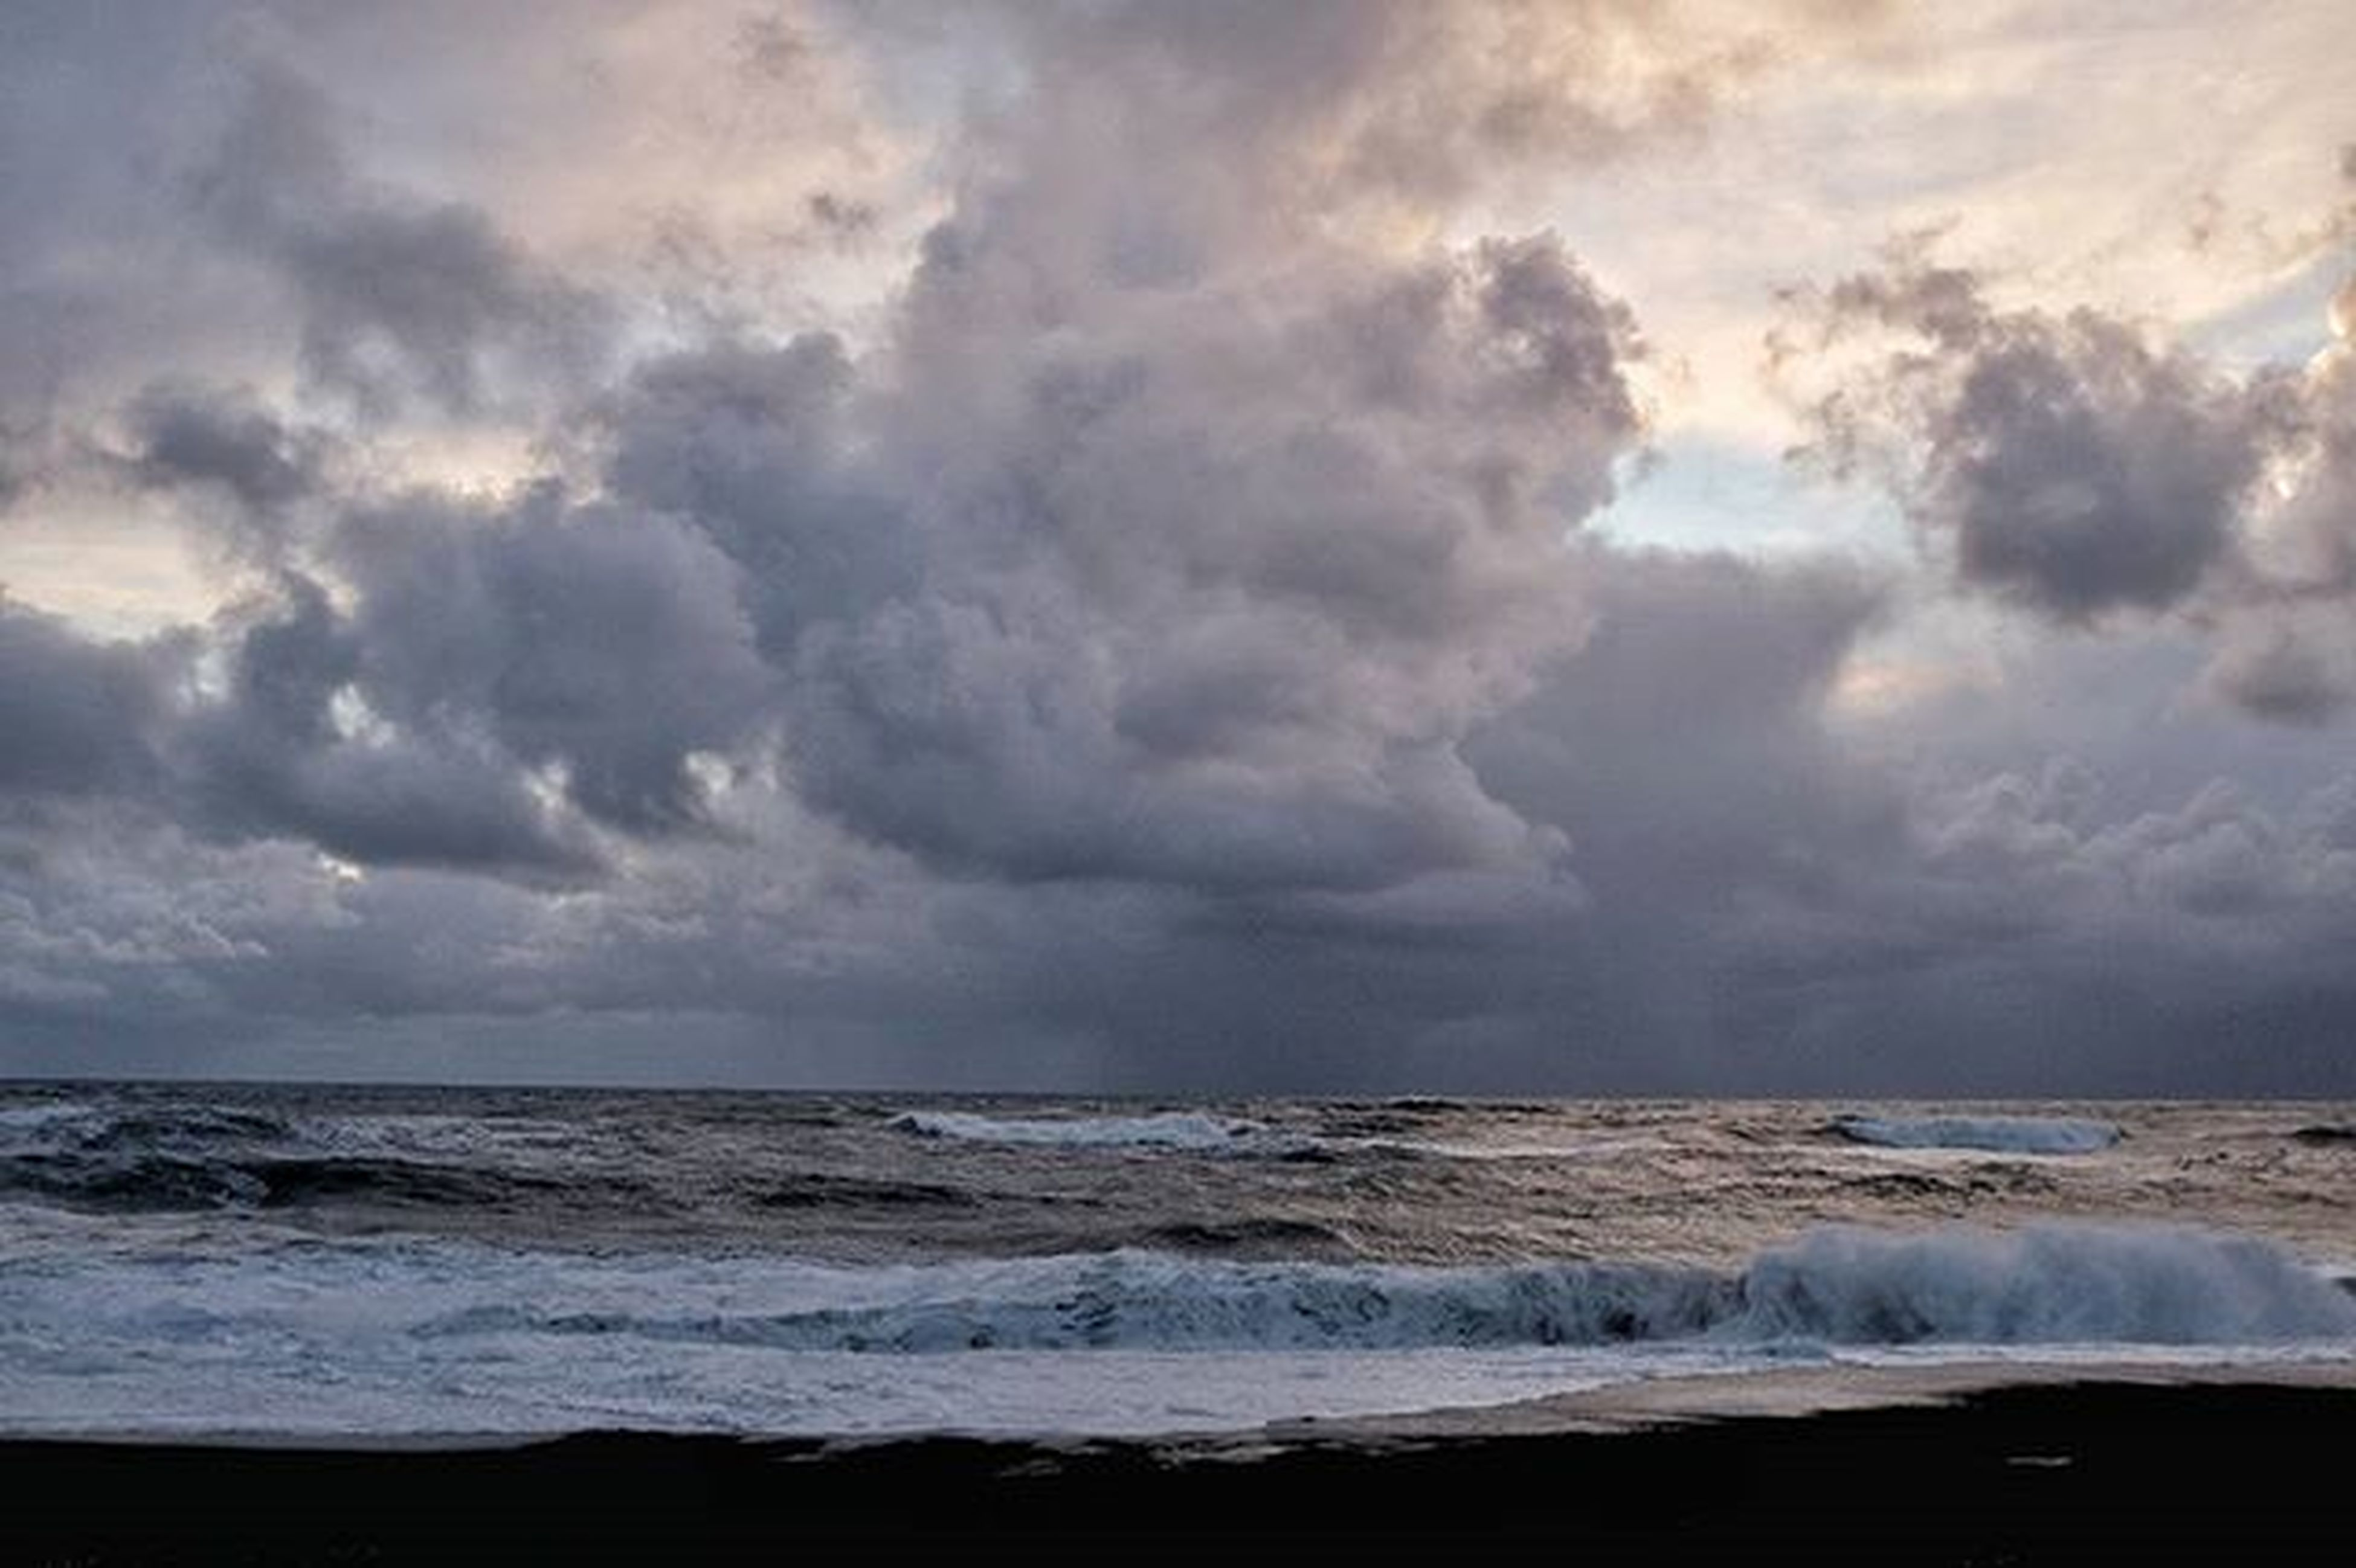 sea, horizon over water, sky, water, scenics, beauty in nature, cloud - sky, tranquil scene, beach, cloudy, tranquility, wave, nature, weather, shore, surf, overcast, storm cloud, idyllic, cloud